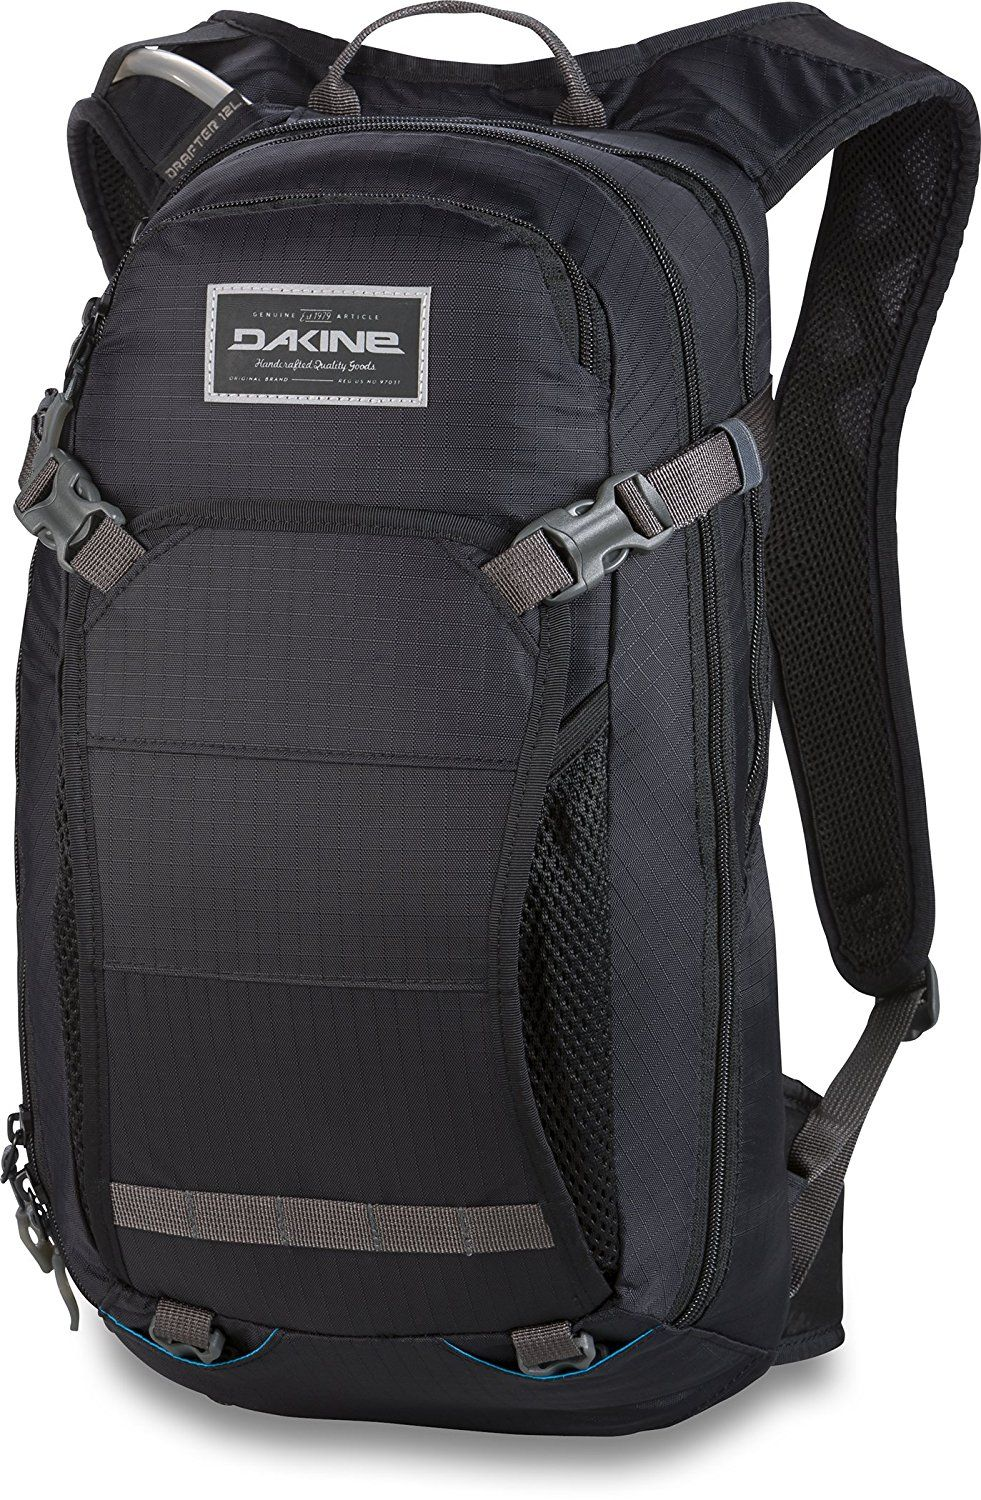 DAKINE Drafter Pack - 700cu in    You can get additional details ... 57f853a7cbf30